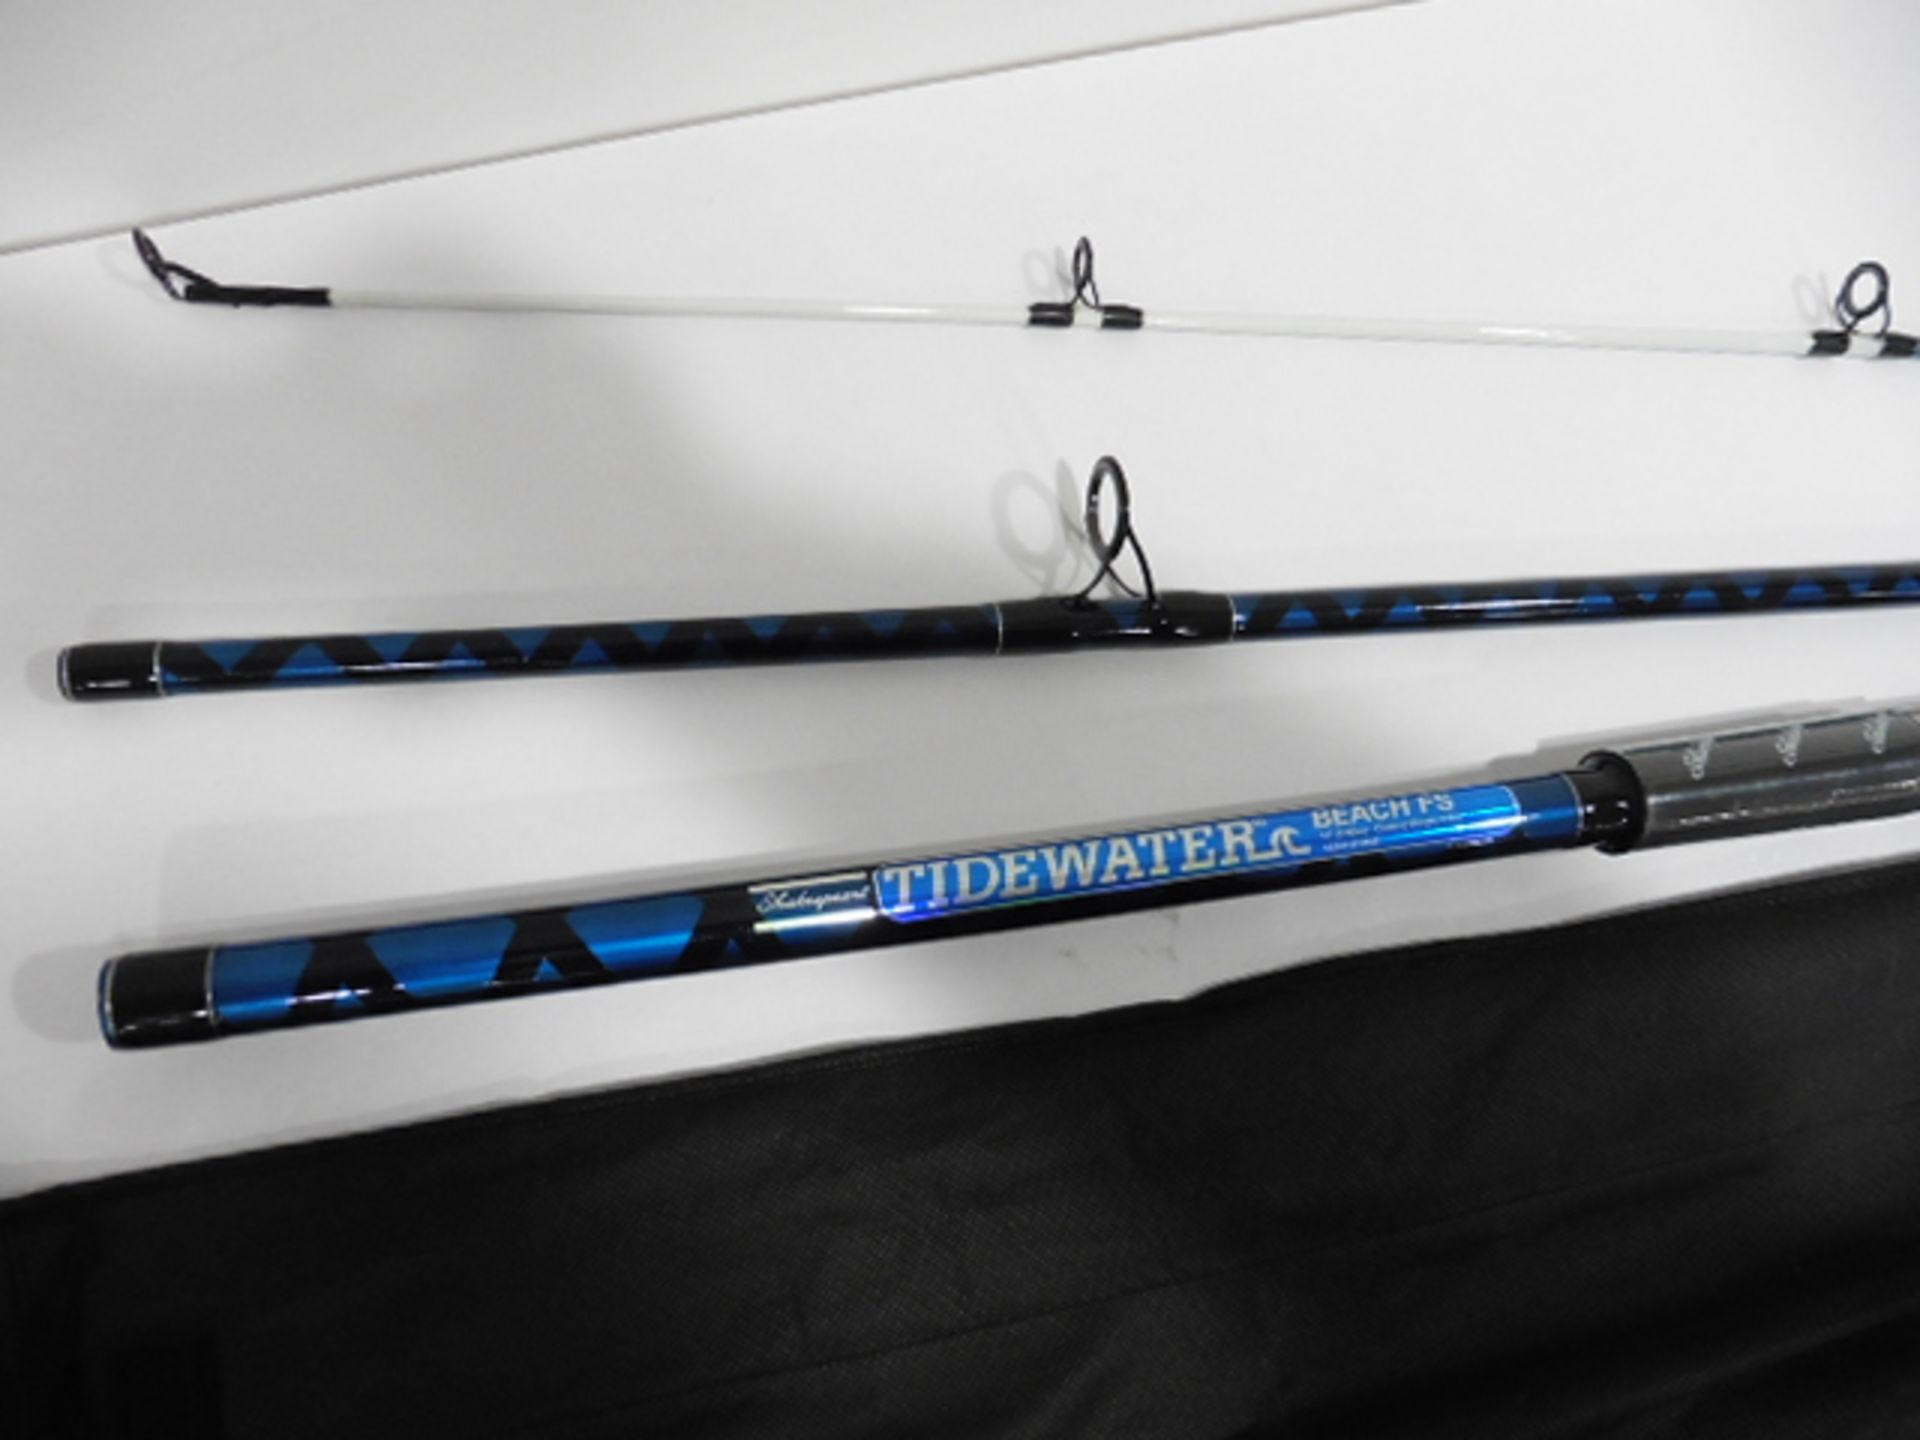 Shakespeare tidewater 390 3 piece Beachcaster Rod 4-8oz - Image 2 of 2